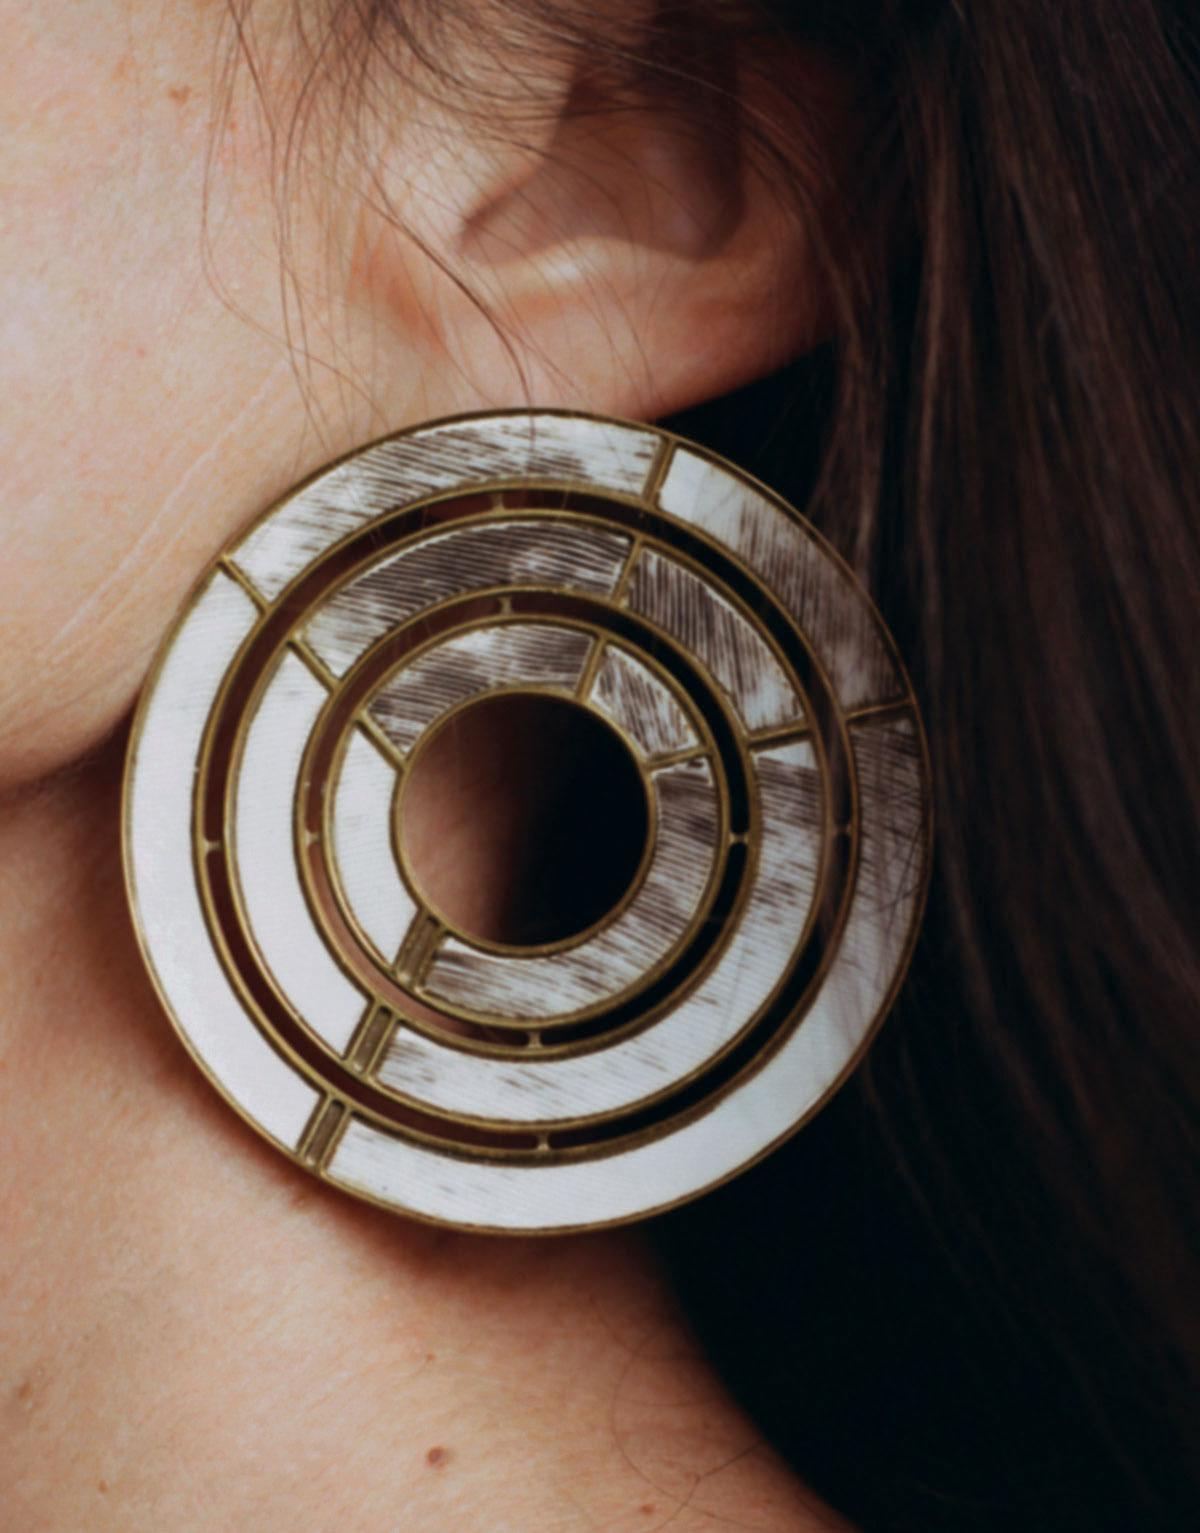 Circular earring with gold detailing